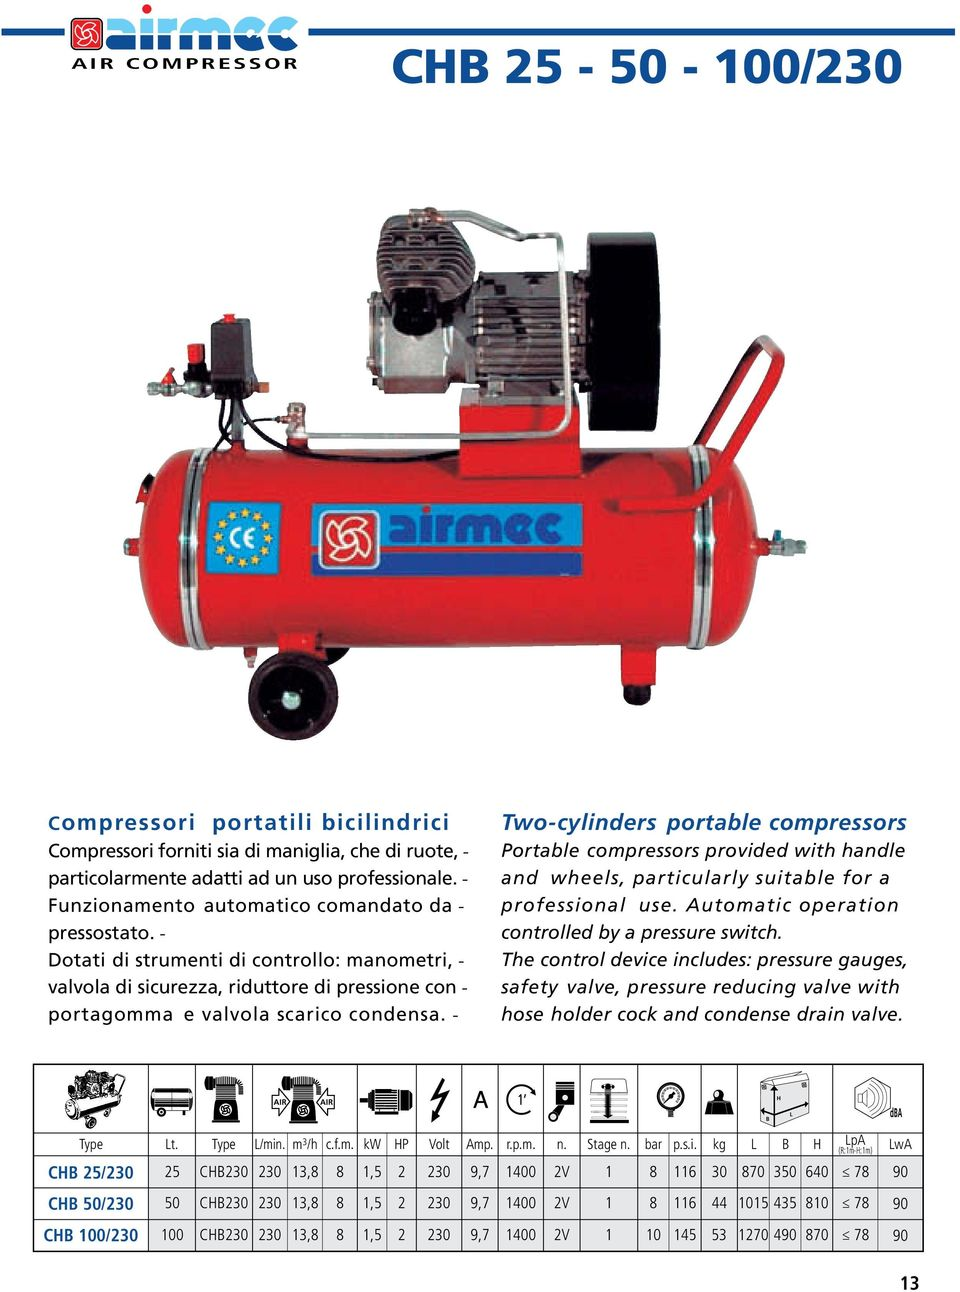 Two-cylinders portable compressors Portable compressors provided with handle and wheels, particularly suitable for a professional use. Automatic operation controlled by a pressure switch.